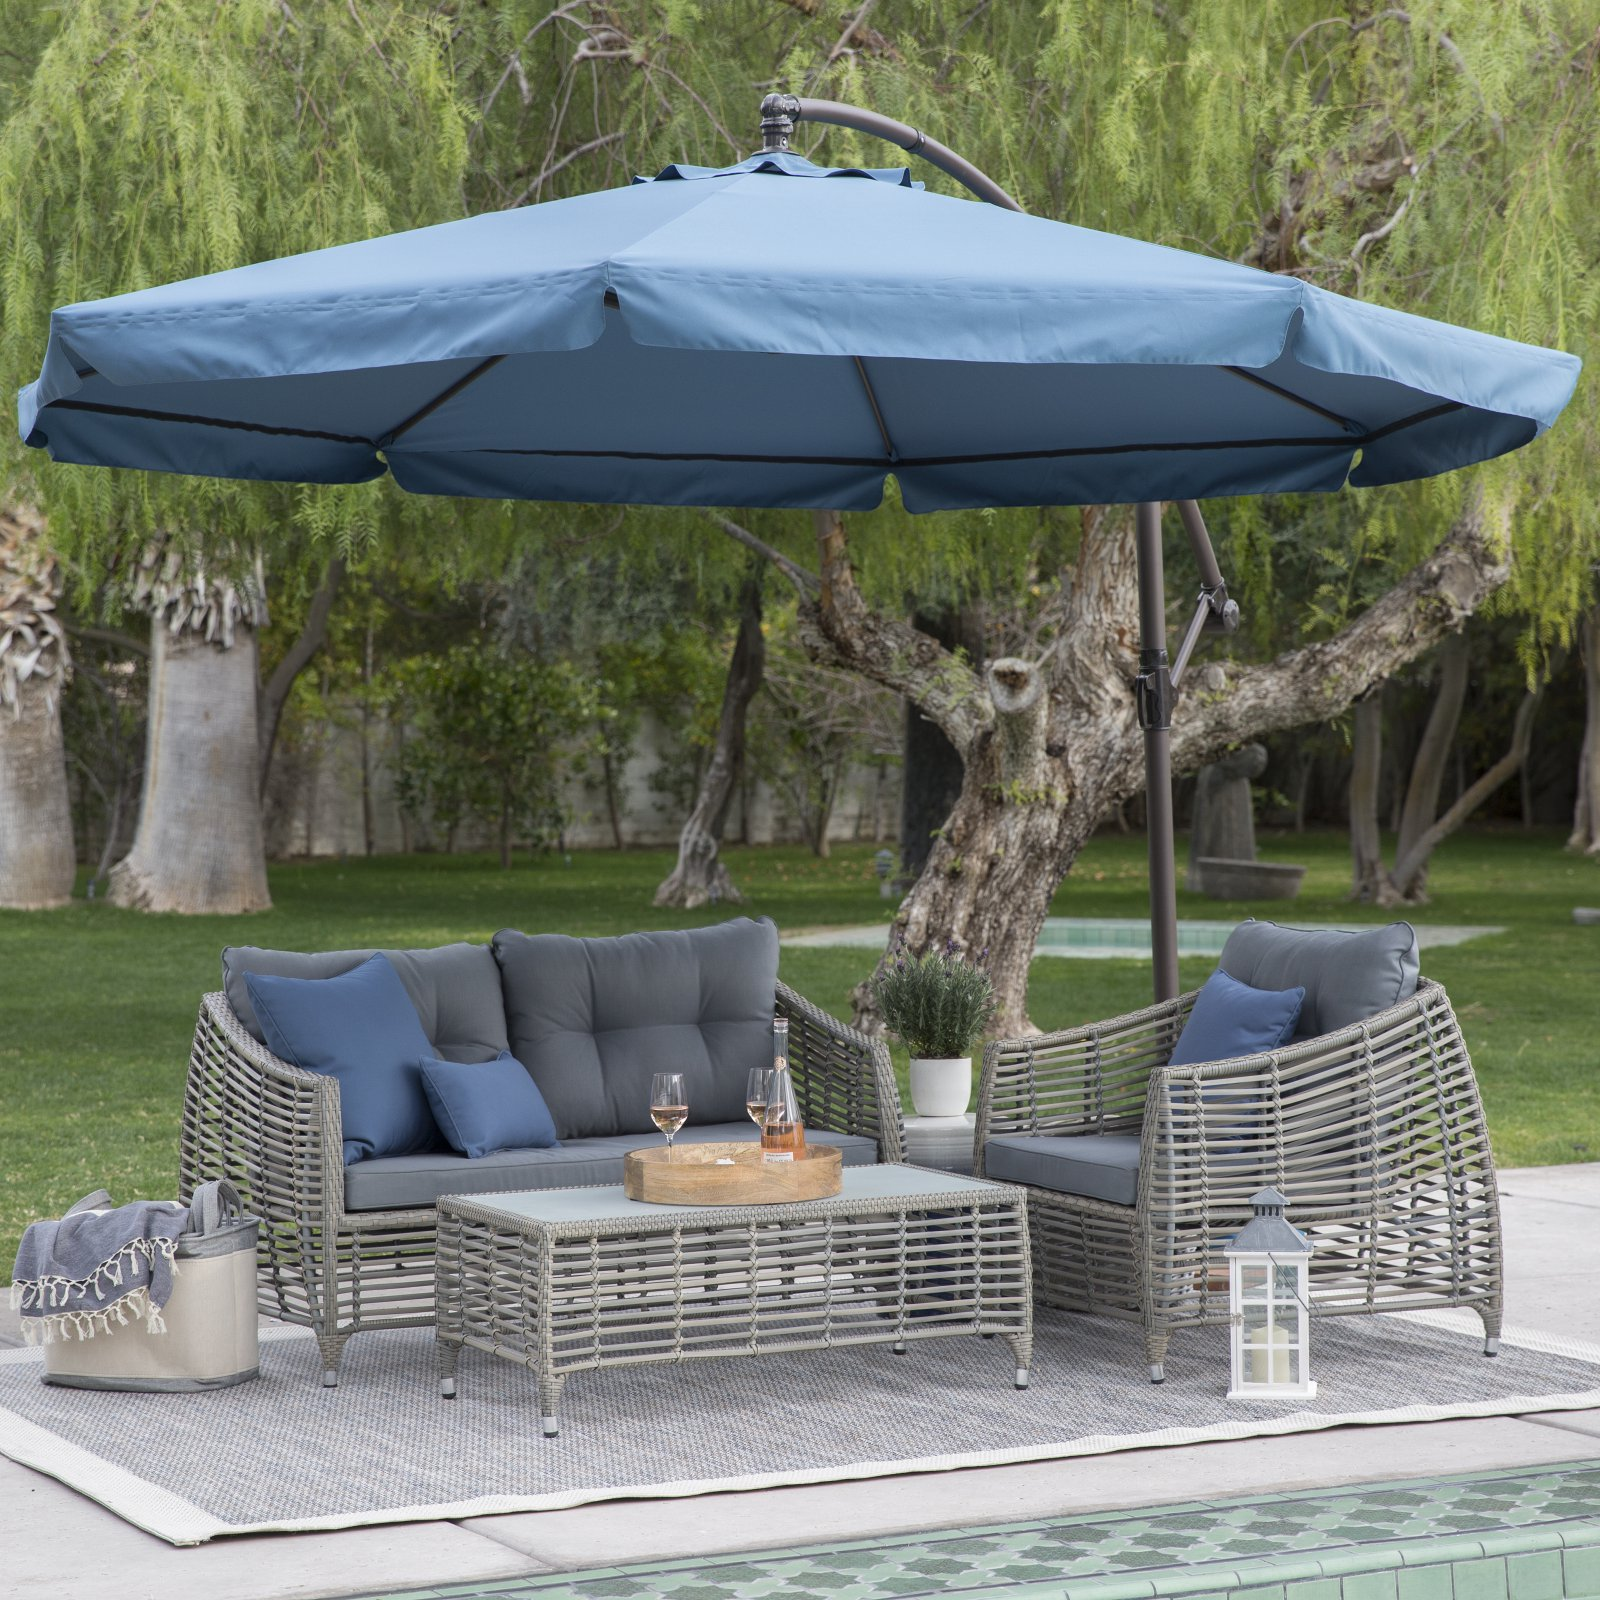 Coral Coast 11 ft. Steel Offset Patio Umbrella with Detachable Netting